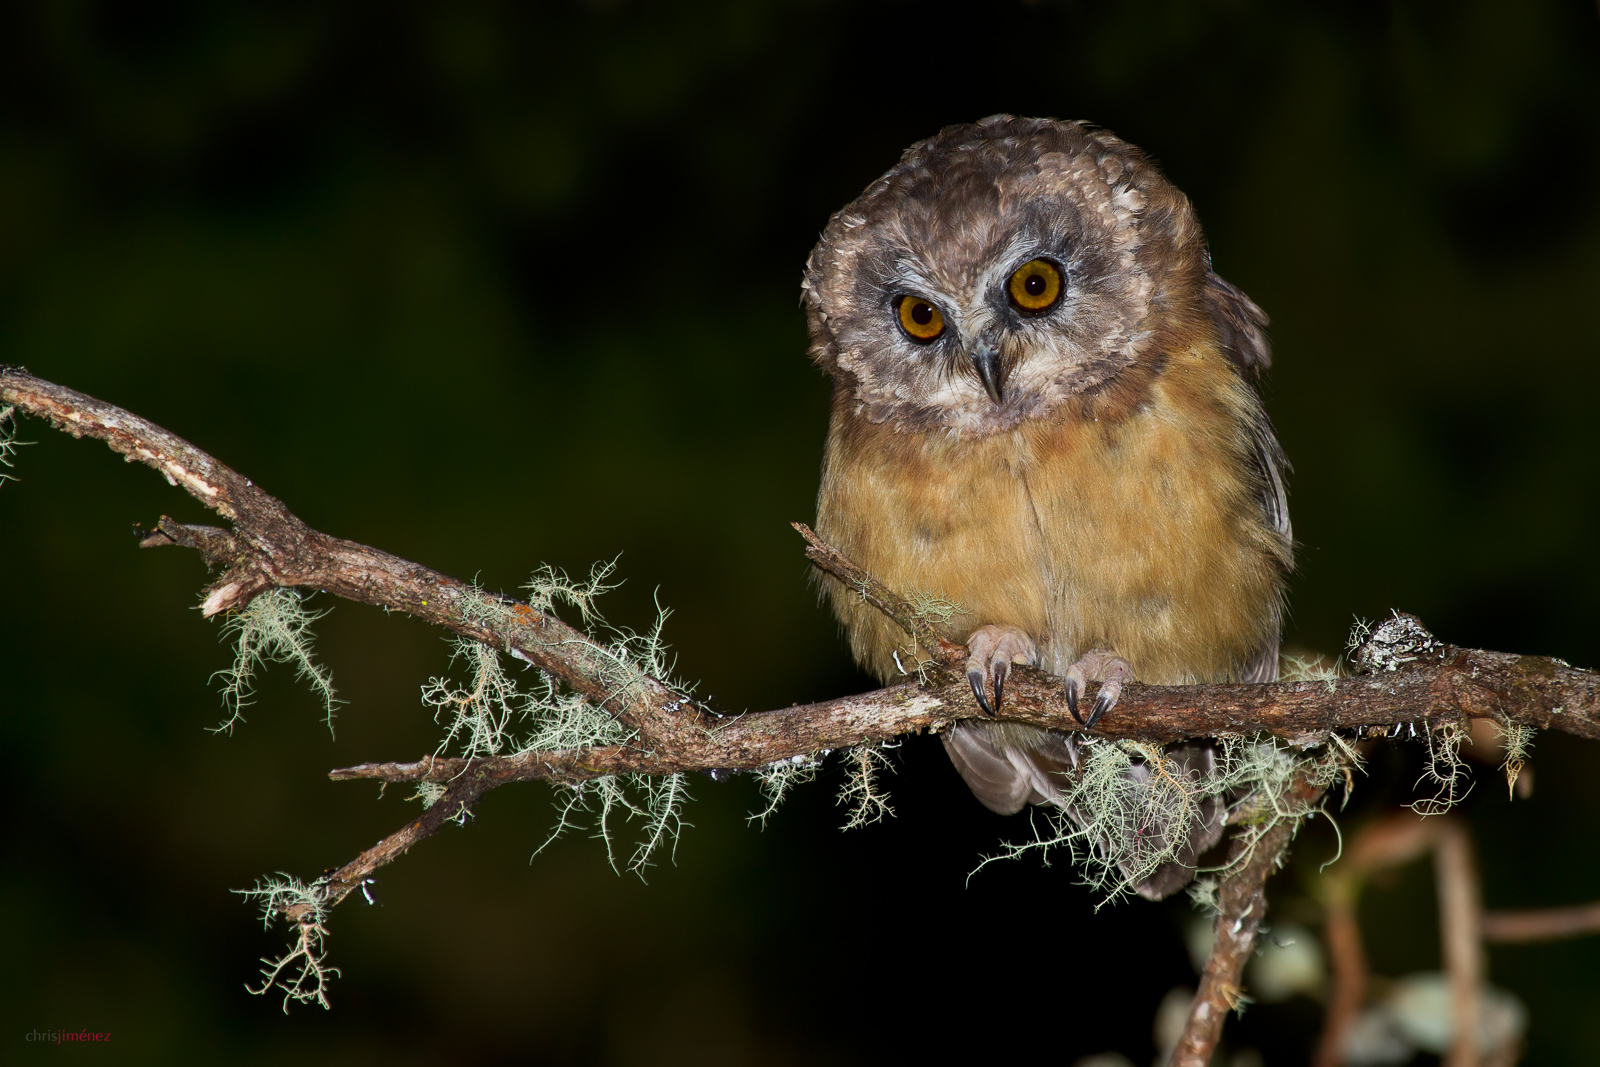 Unspotted Saw-whet Owl (Aegolius ridgwayi). Probatly one of the very few pictures in the wild of this very rare owl. After more than 1 years of looking for the spicie on top peaks of Costa Rica, I manage to get a shot of this Juvenile. Taken at Chirripo National Park, Costa Rica.